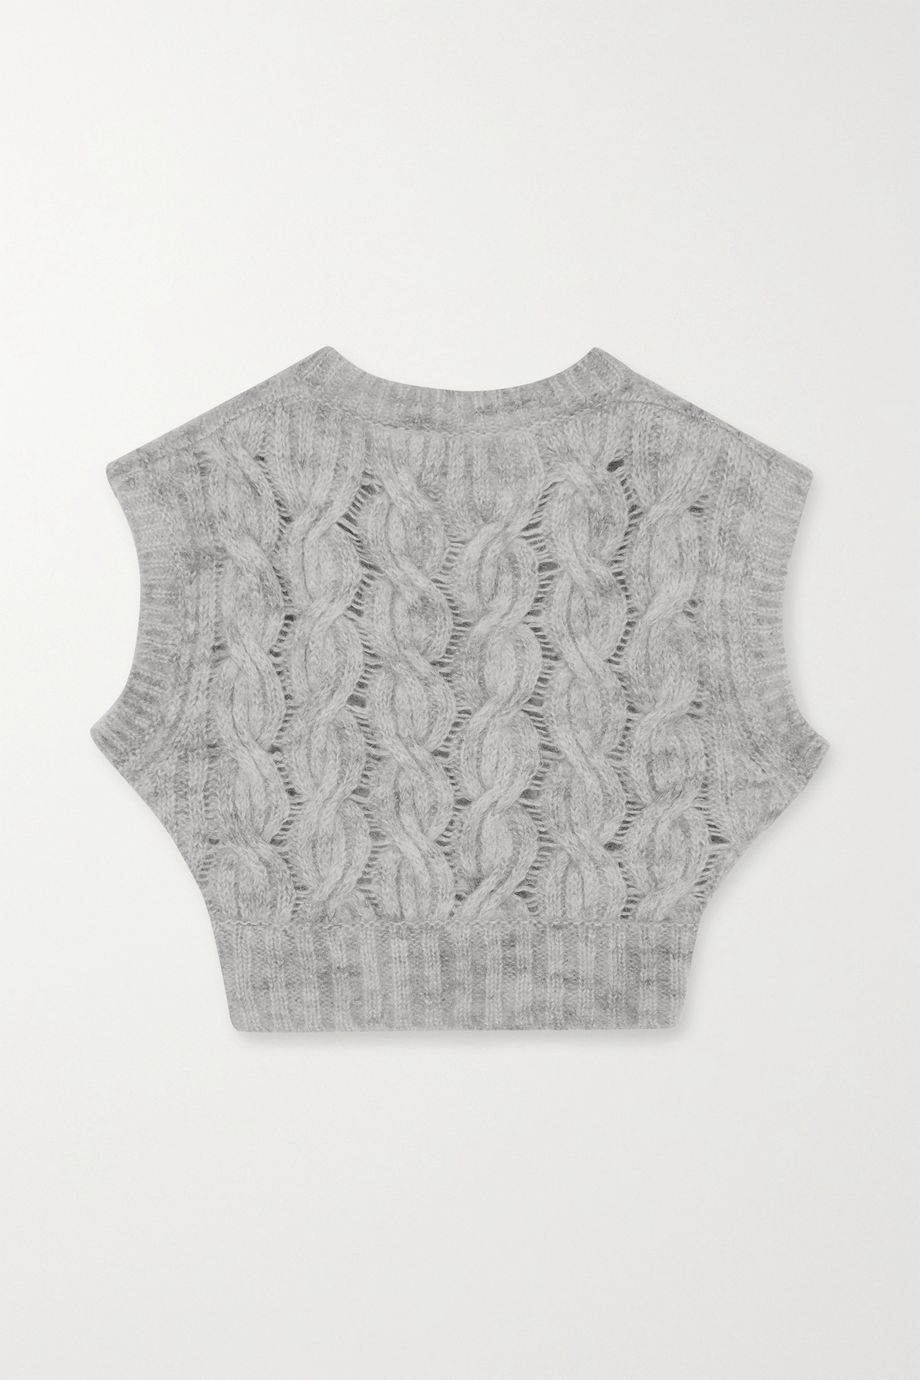 Nina Ricci Cropped cable-knit mohair-blend vest